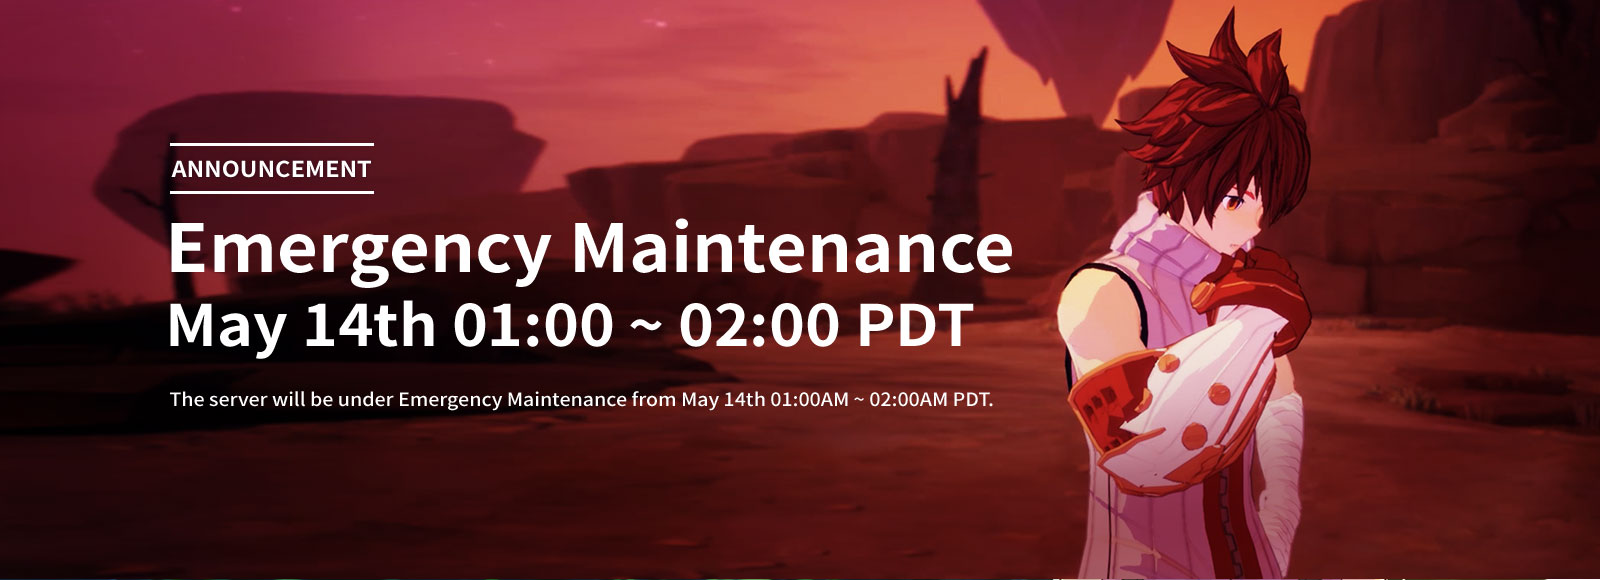 May 14th Emergency Maintenance Announcement